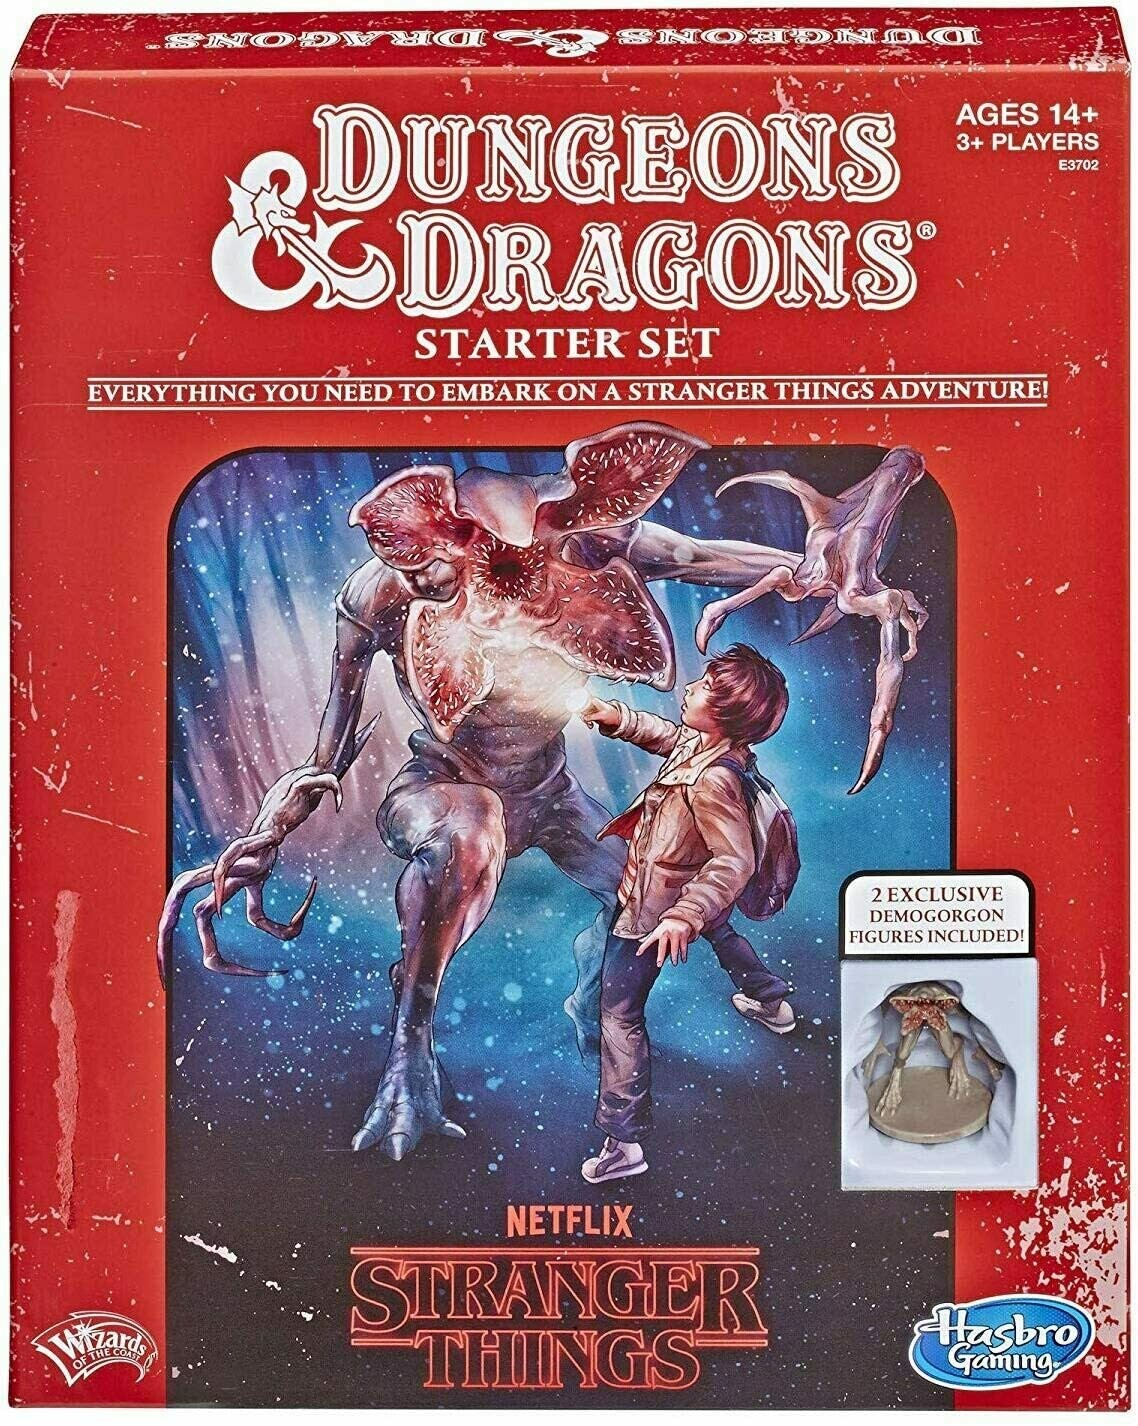 D&D: Stranger Things Starter Set